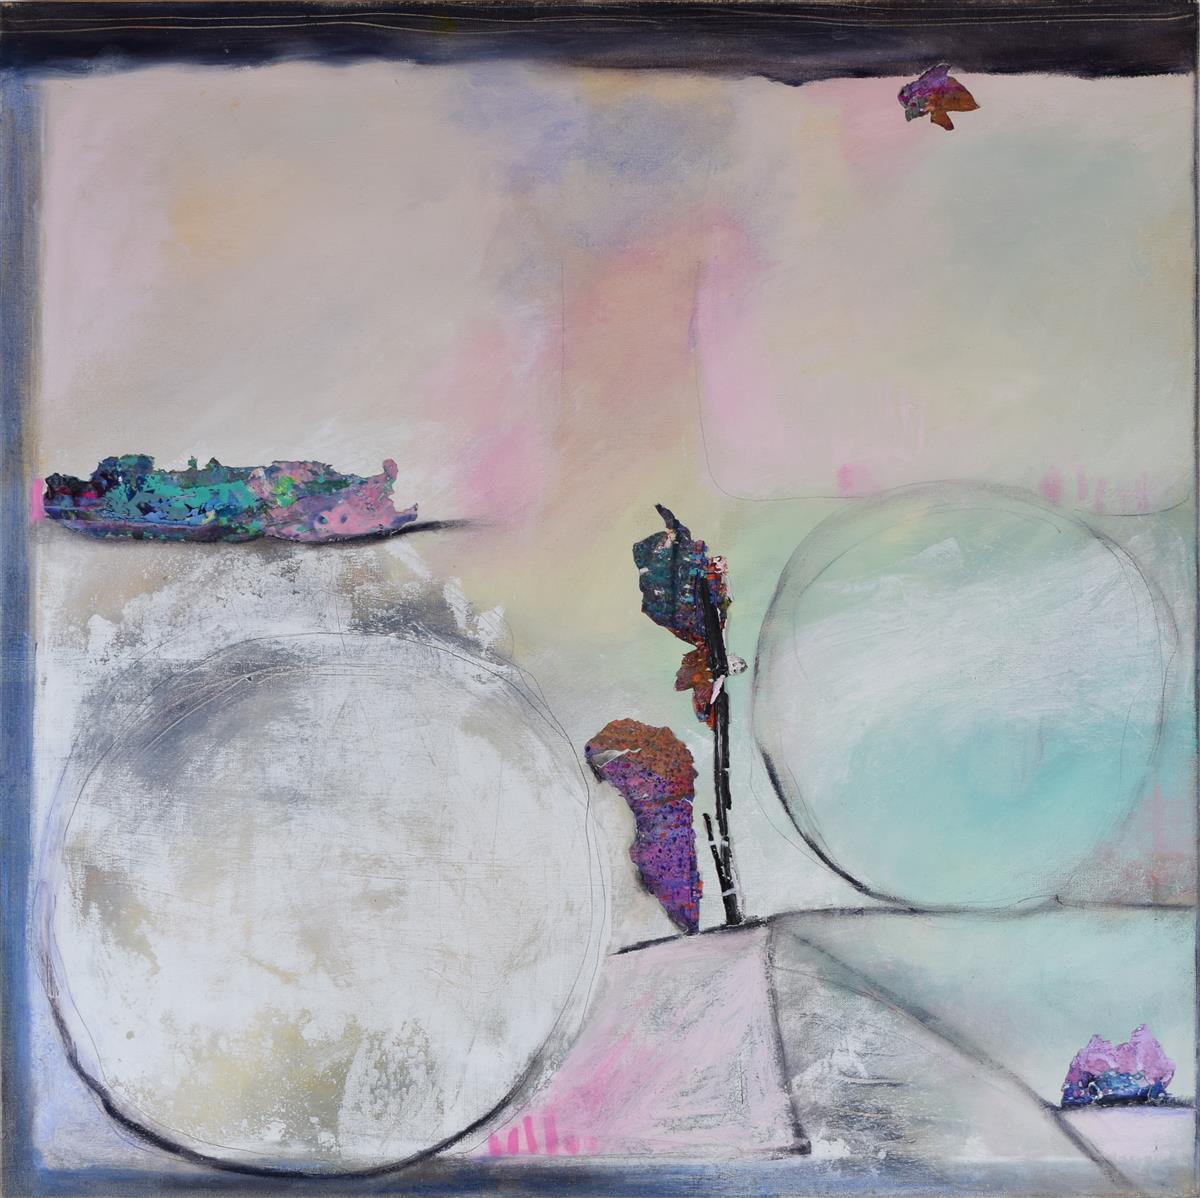 """Linda Stelling, (b. 1951, American), """"The Word is Love,"""" 2020, Mixed media on canvas, 36"""" H x 36"""" W"""